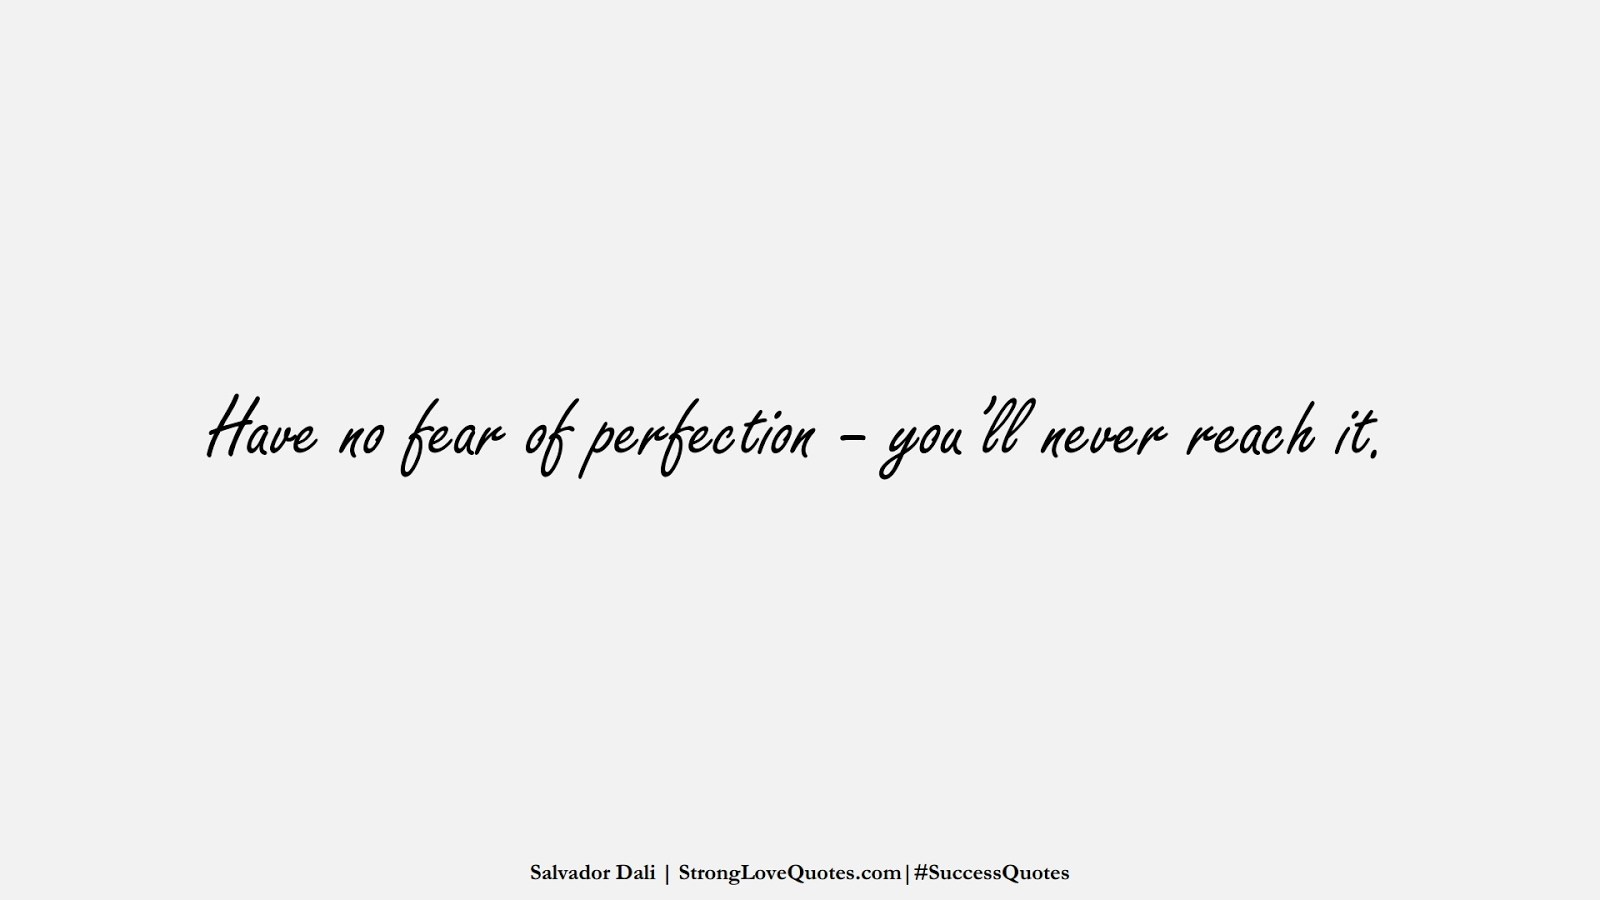 Have no fear of perfection – you'll never reach it. (Salvador Dali);  #SuccessQuotes